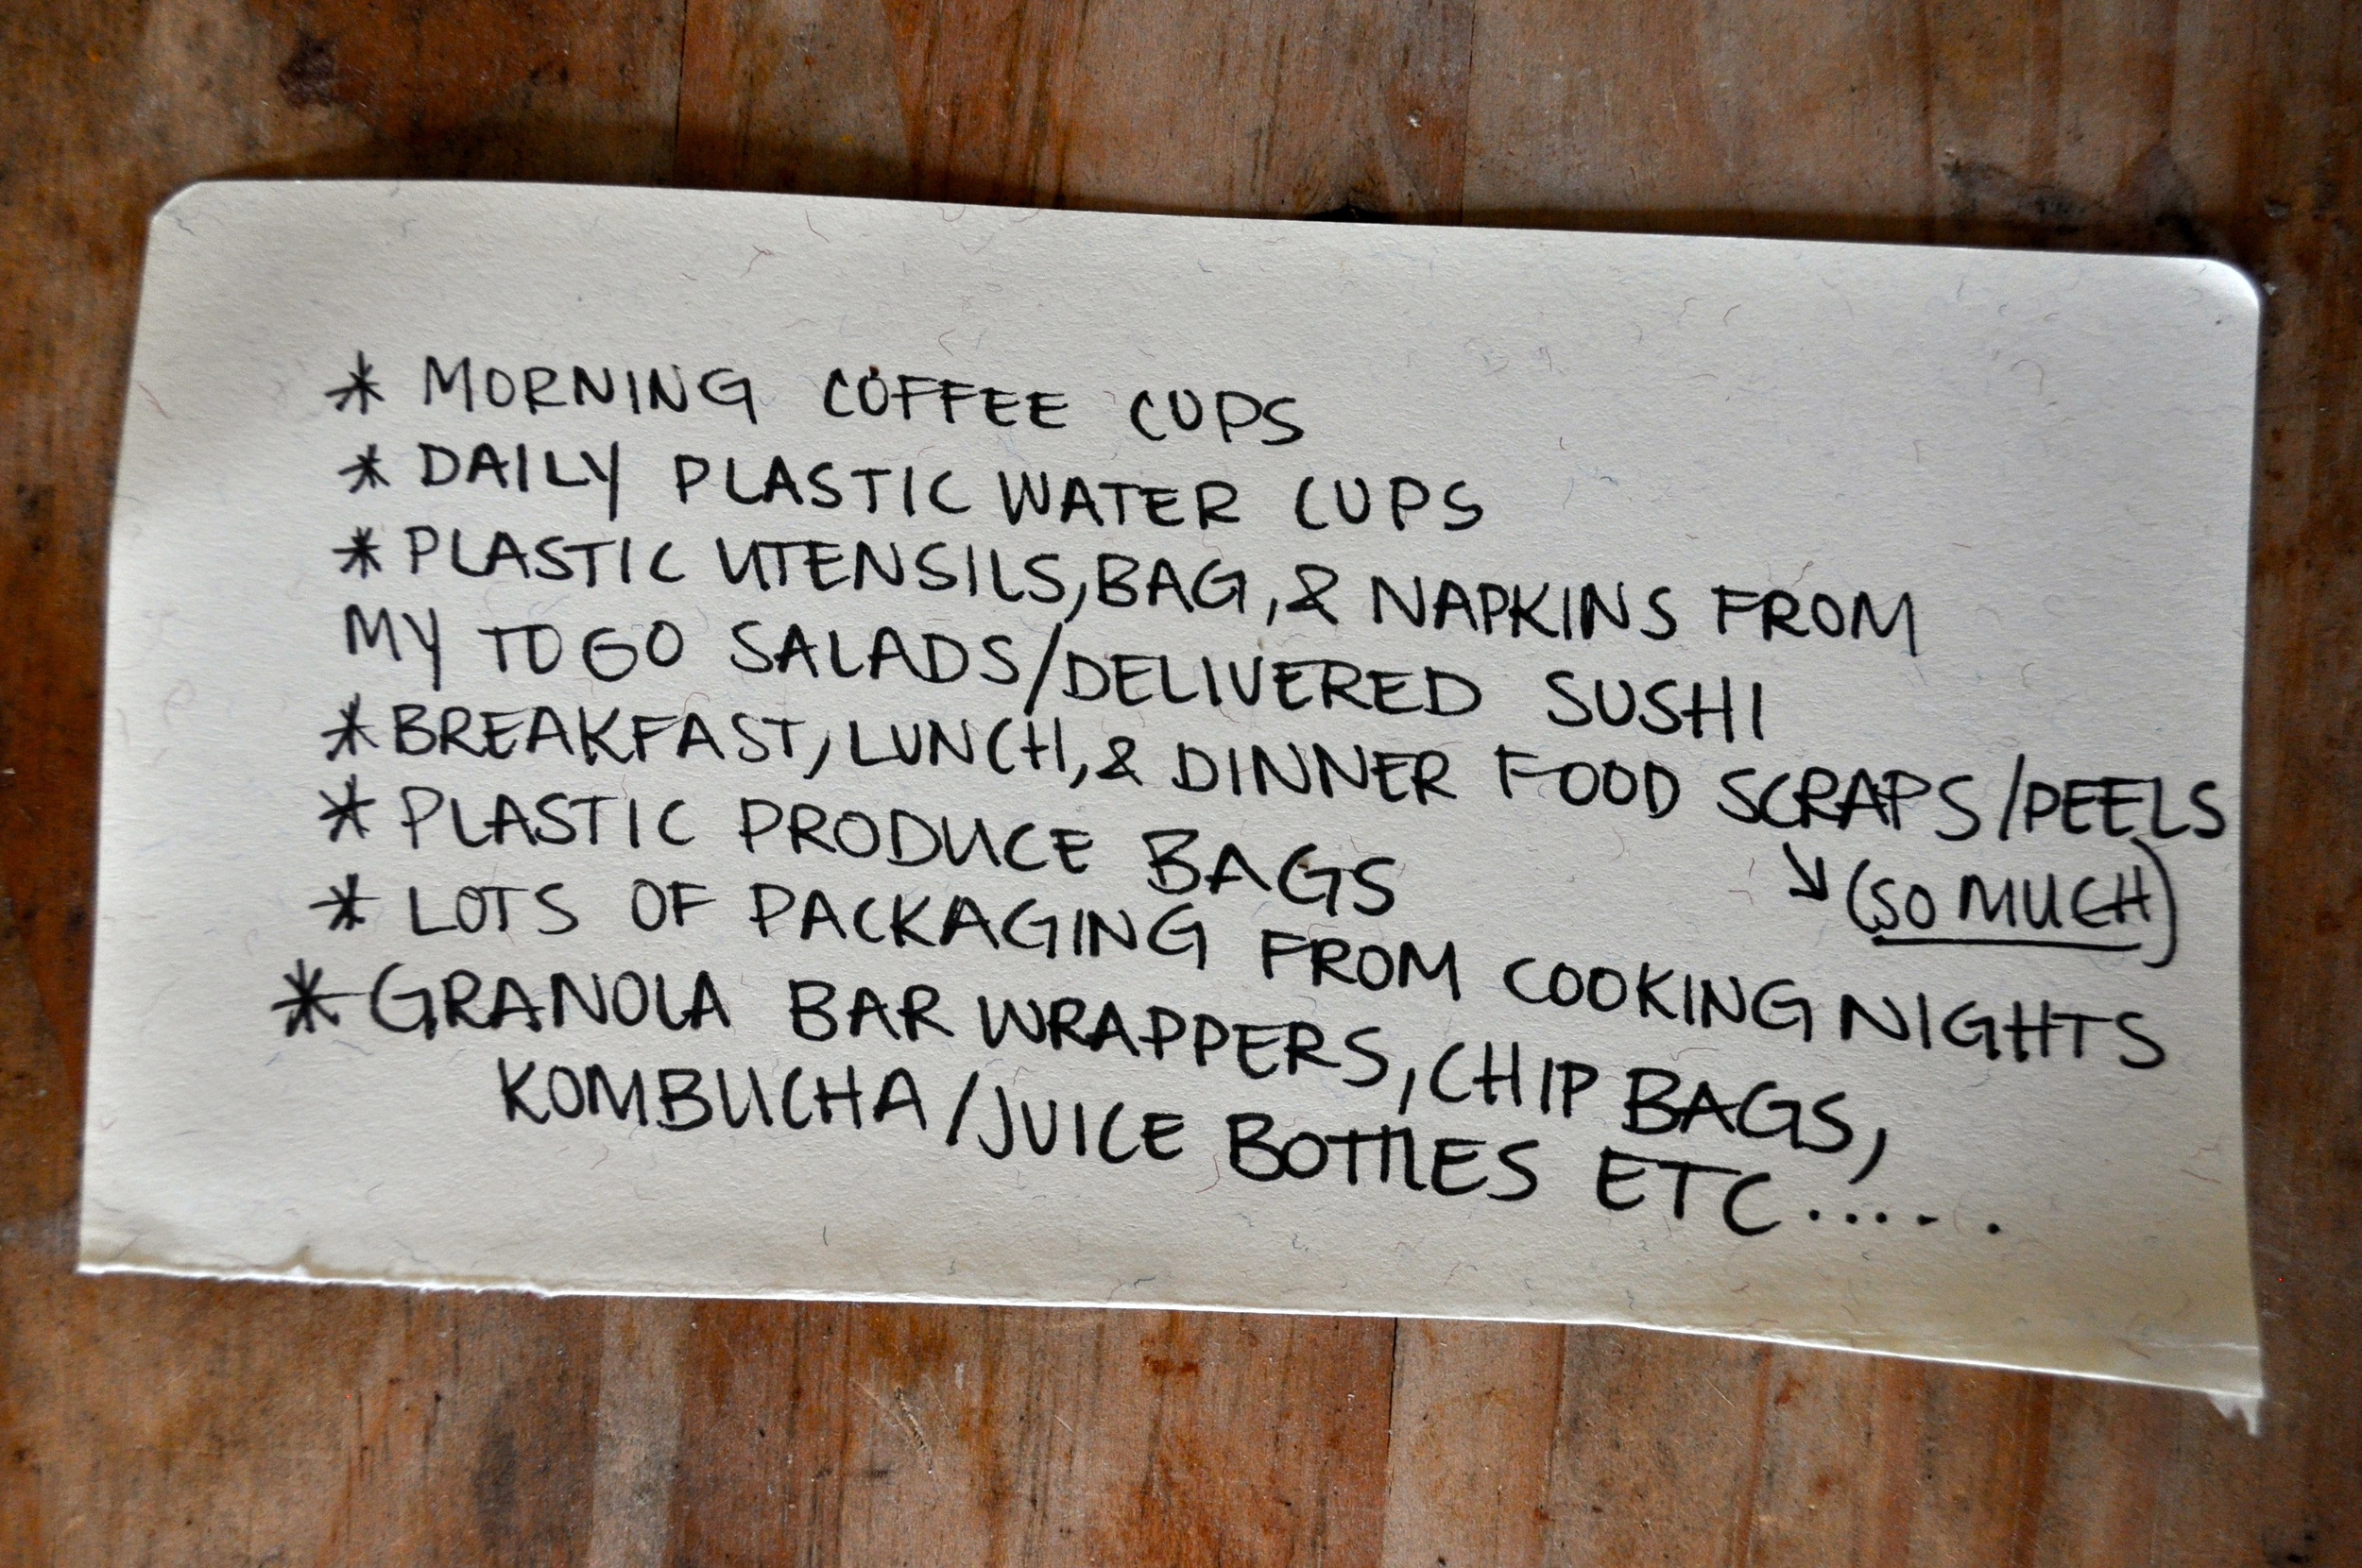 This was from a corner scrap paper in my art bin. This list was to document what I was wasting in a general day.